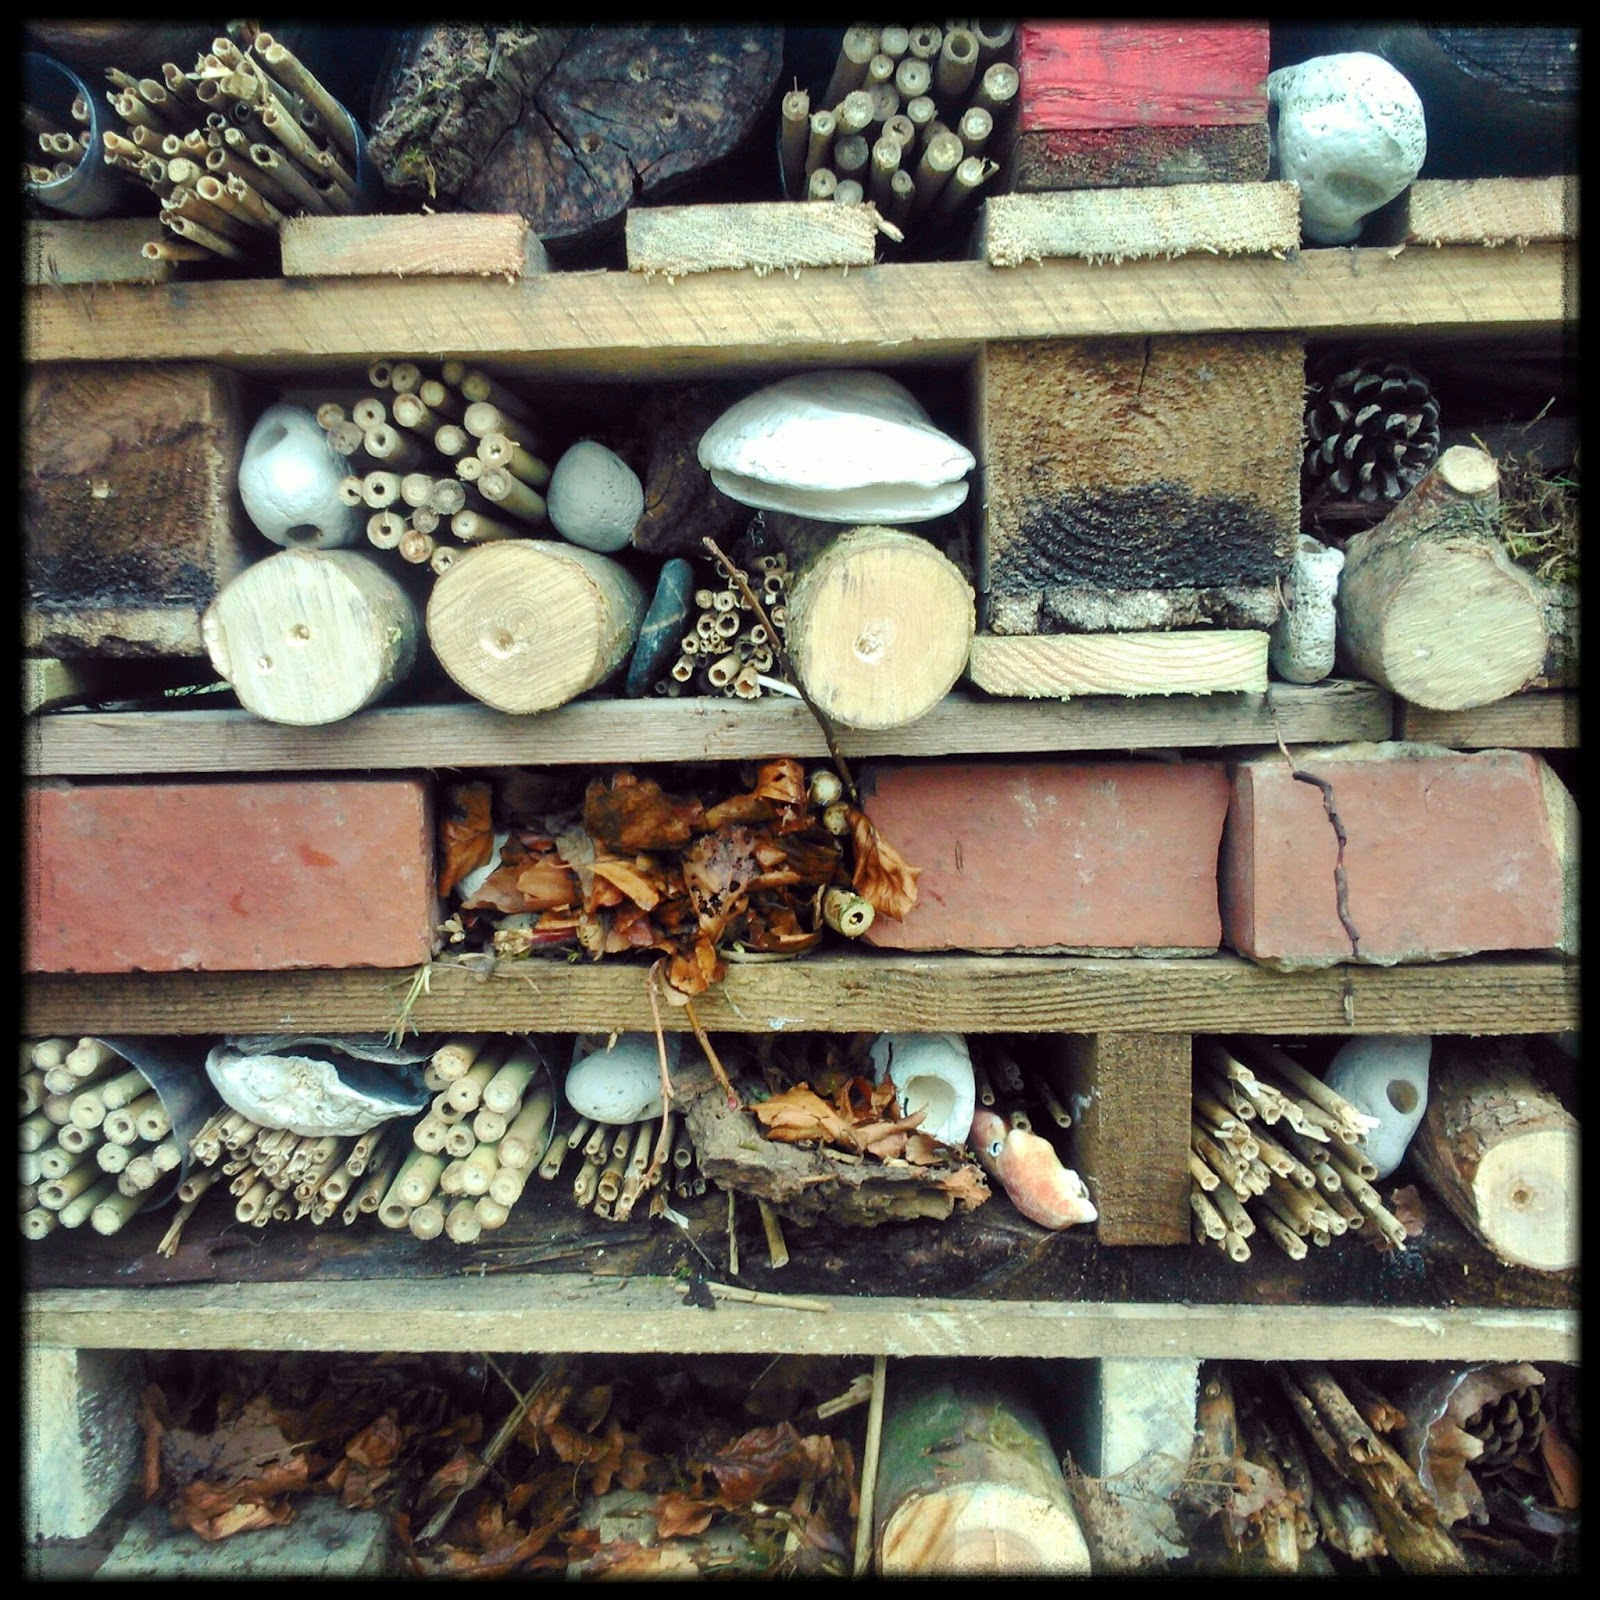 A closer look at the Bug Hotel